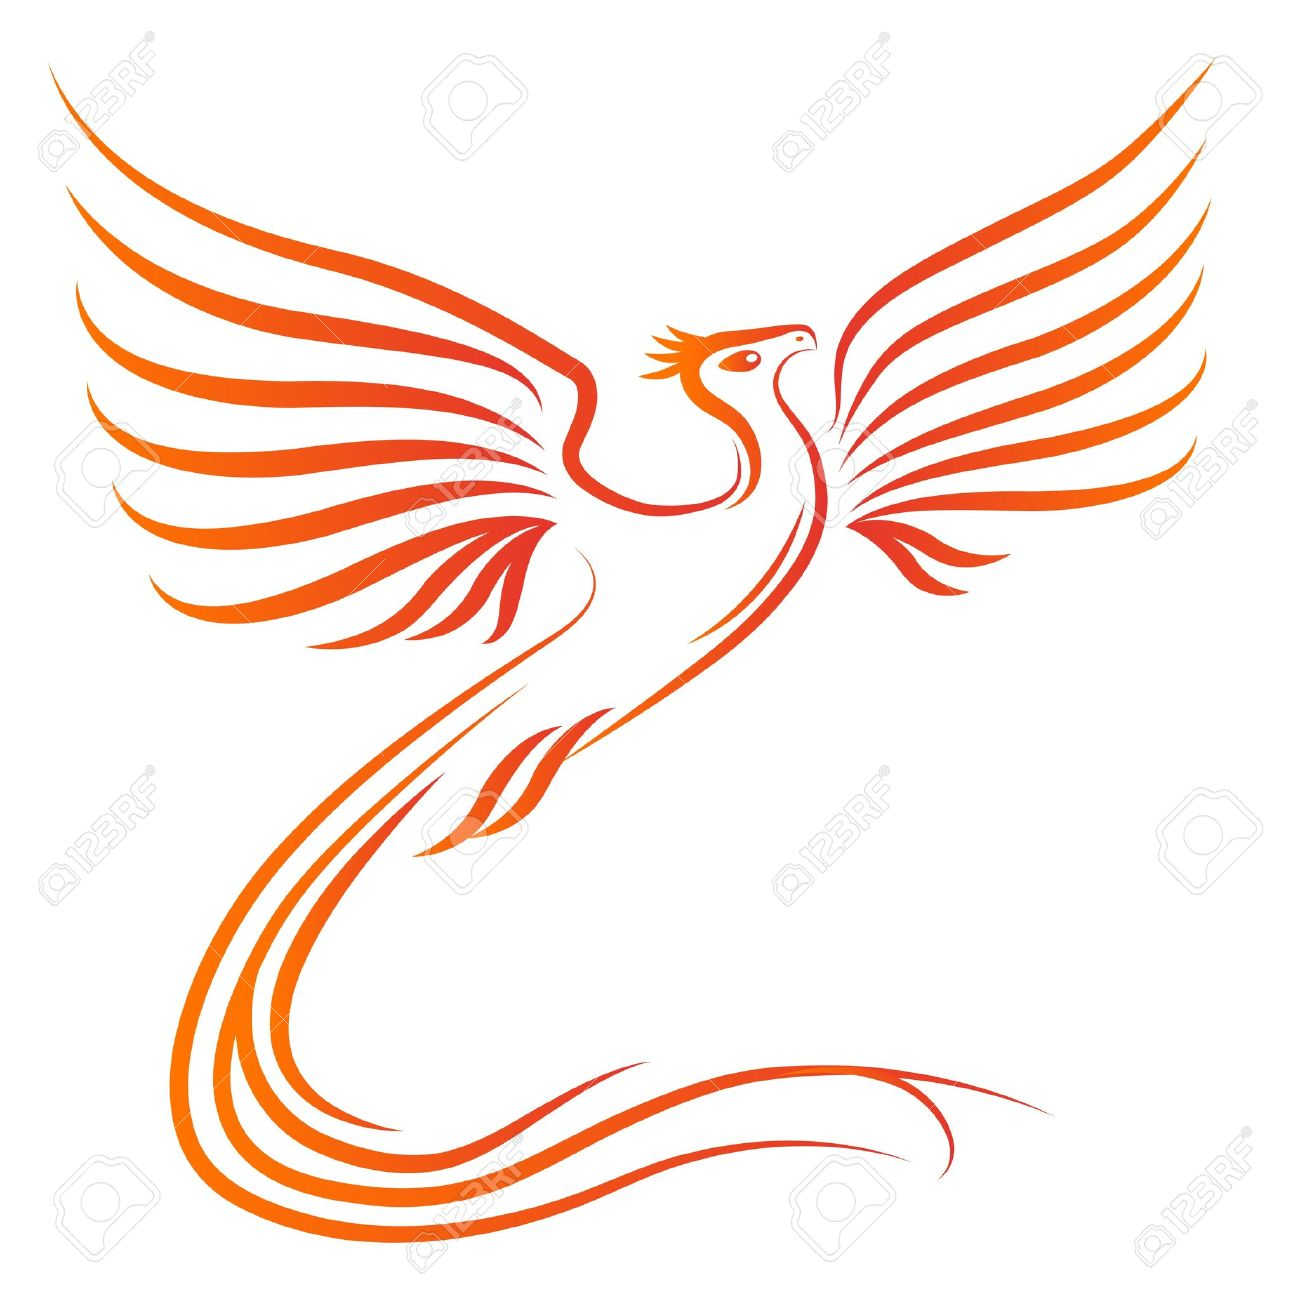 phoenix bird silhouette royalty free cliparts vectors and stock